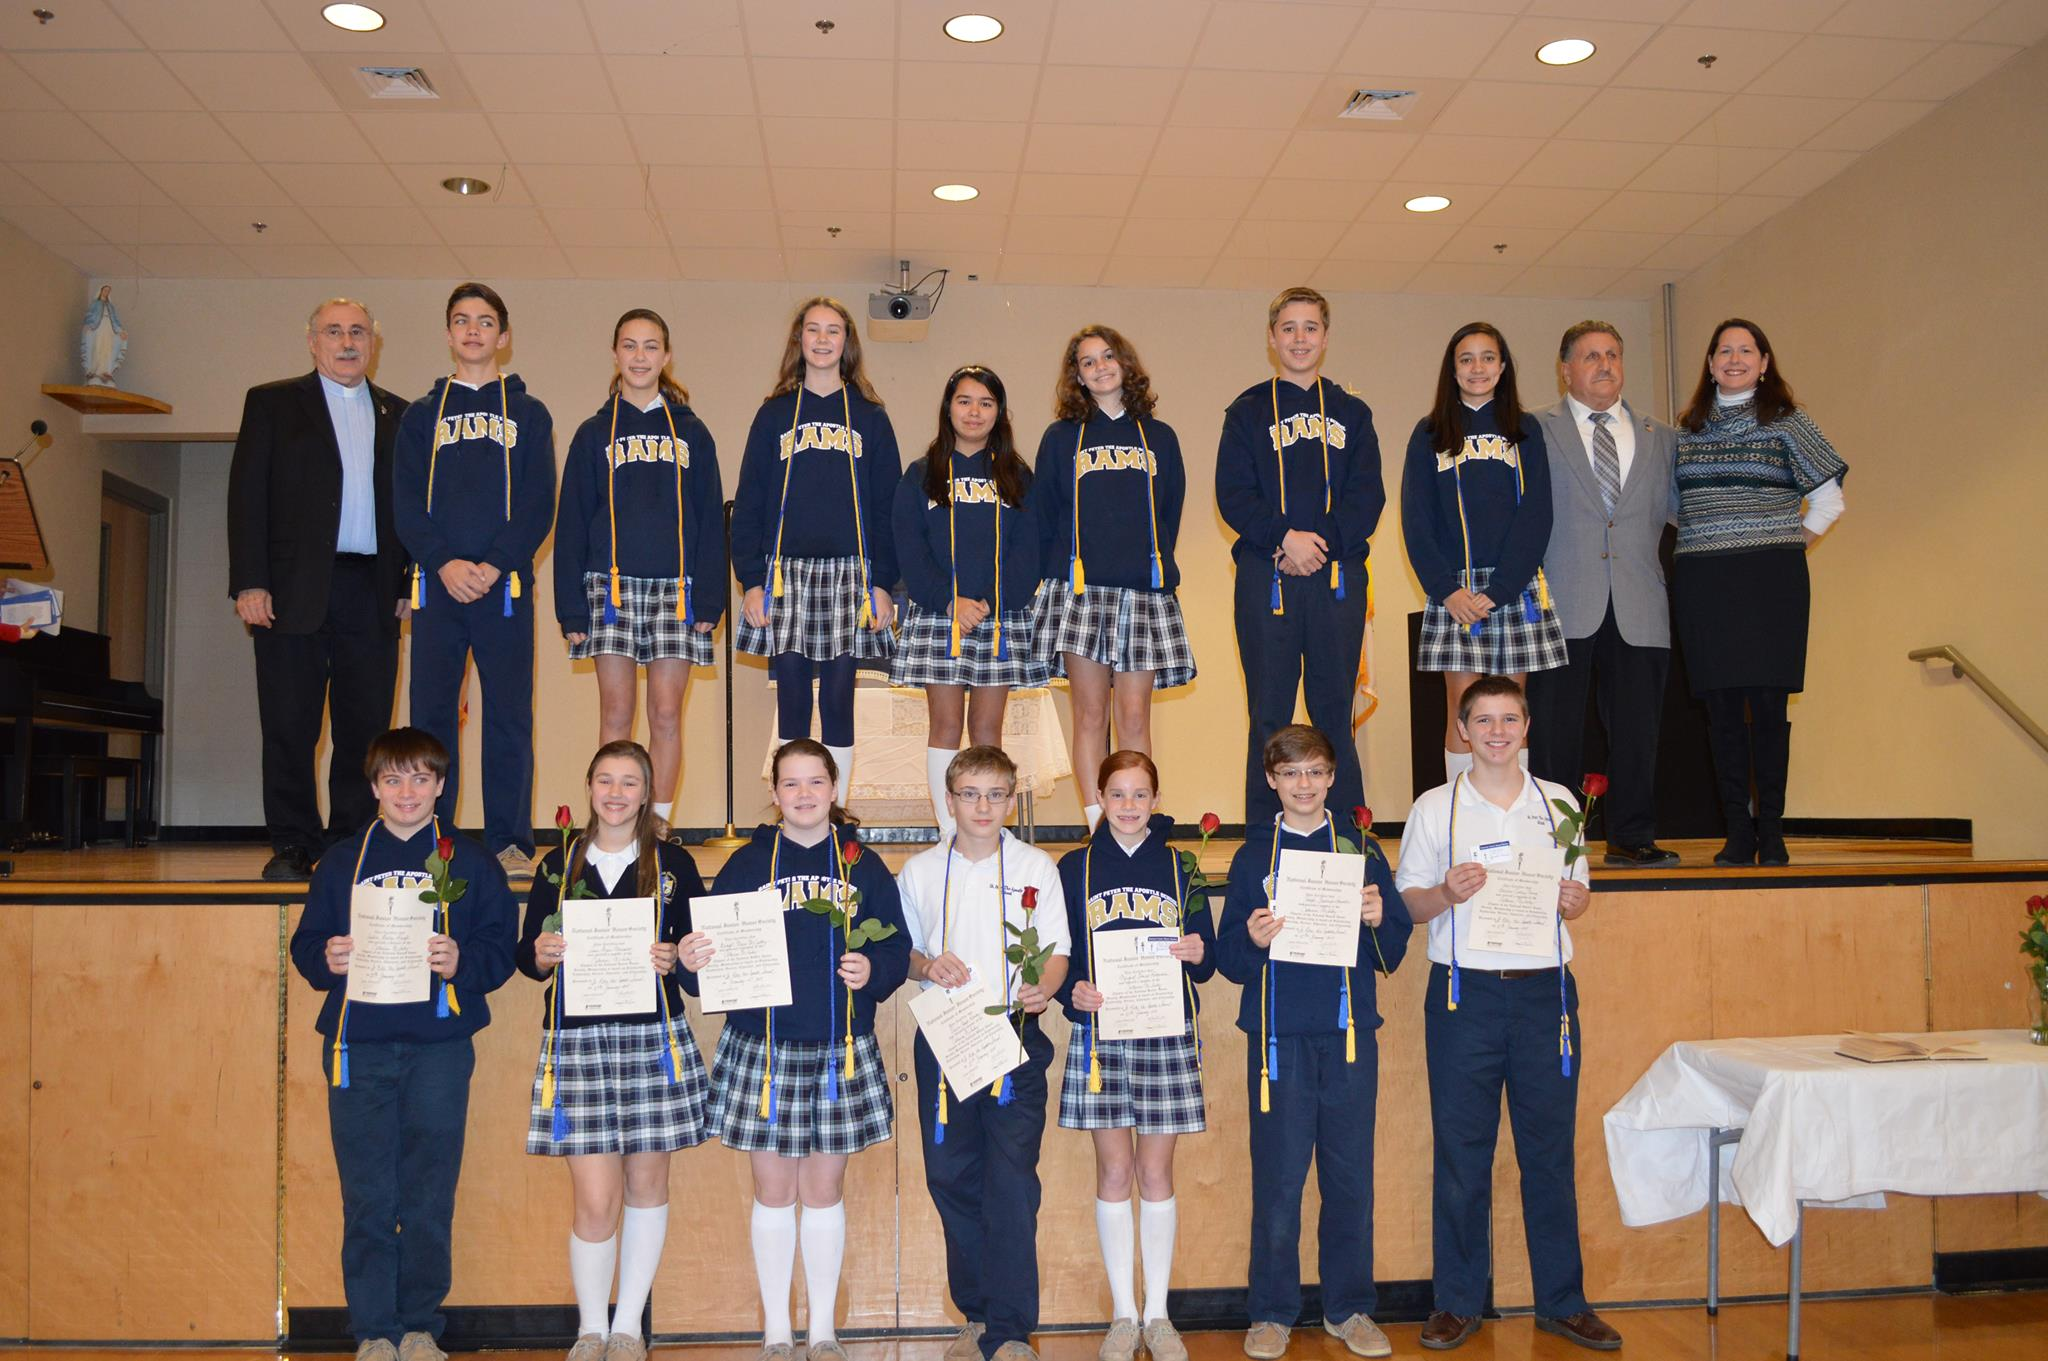 National Junior Honor Society Inductions at SPA - St Peter ...